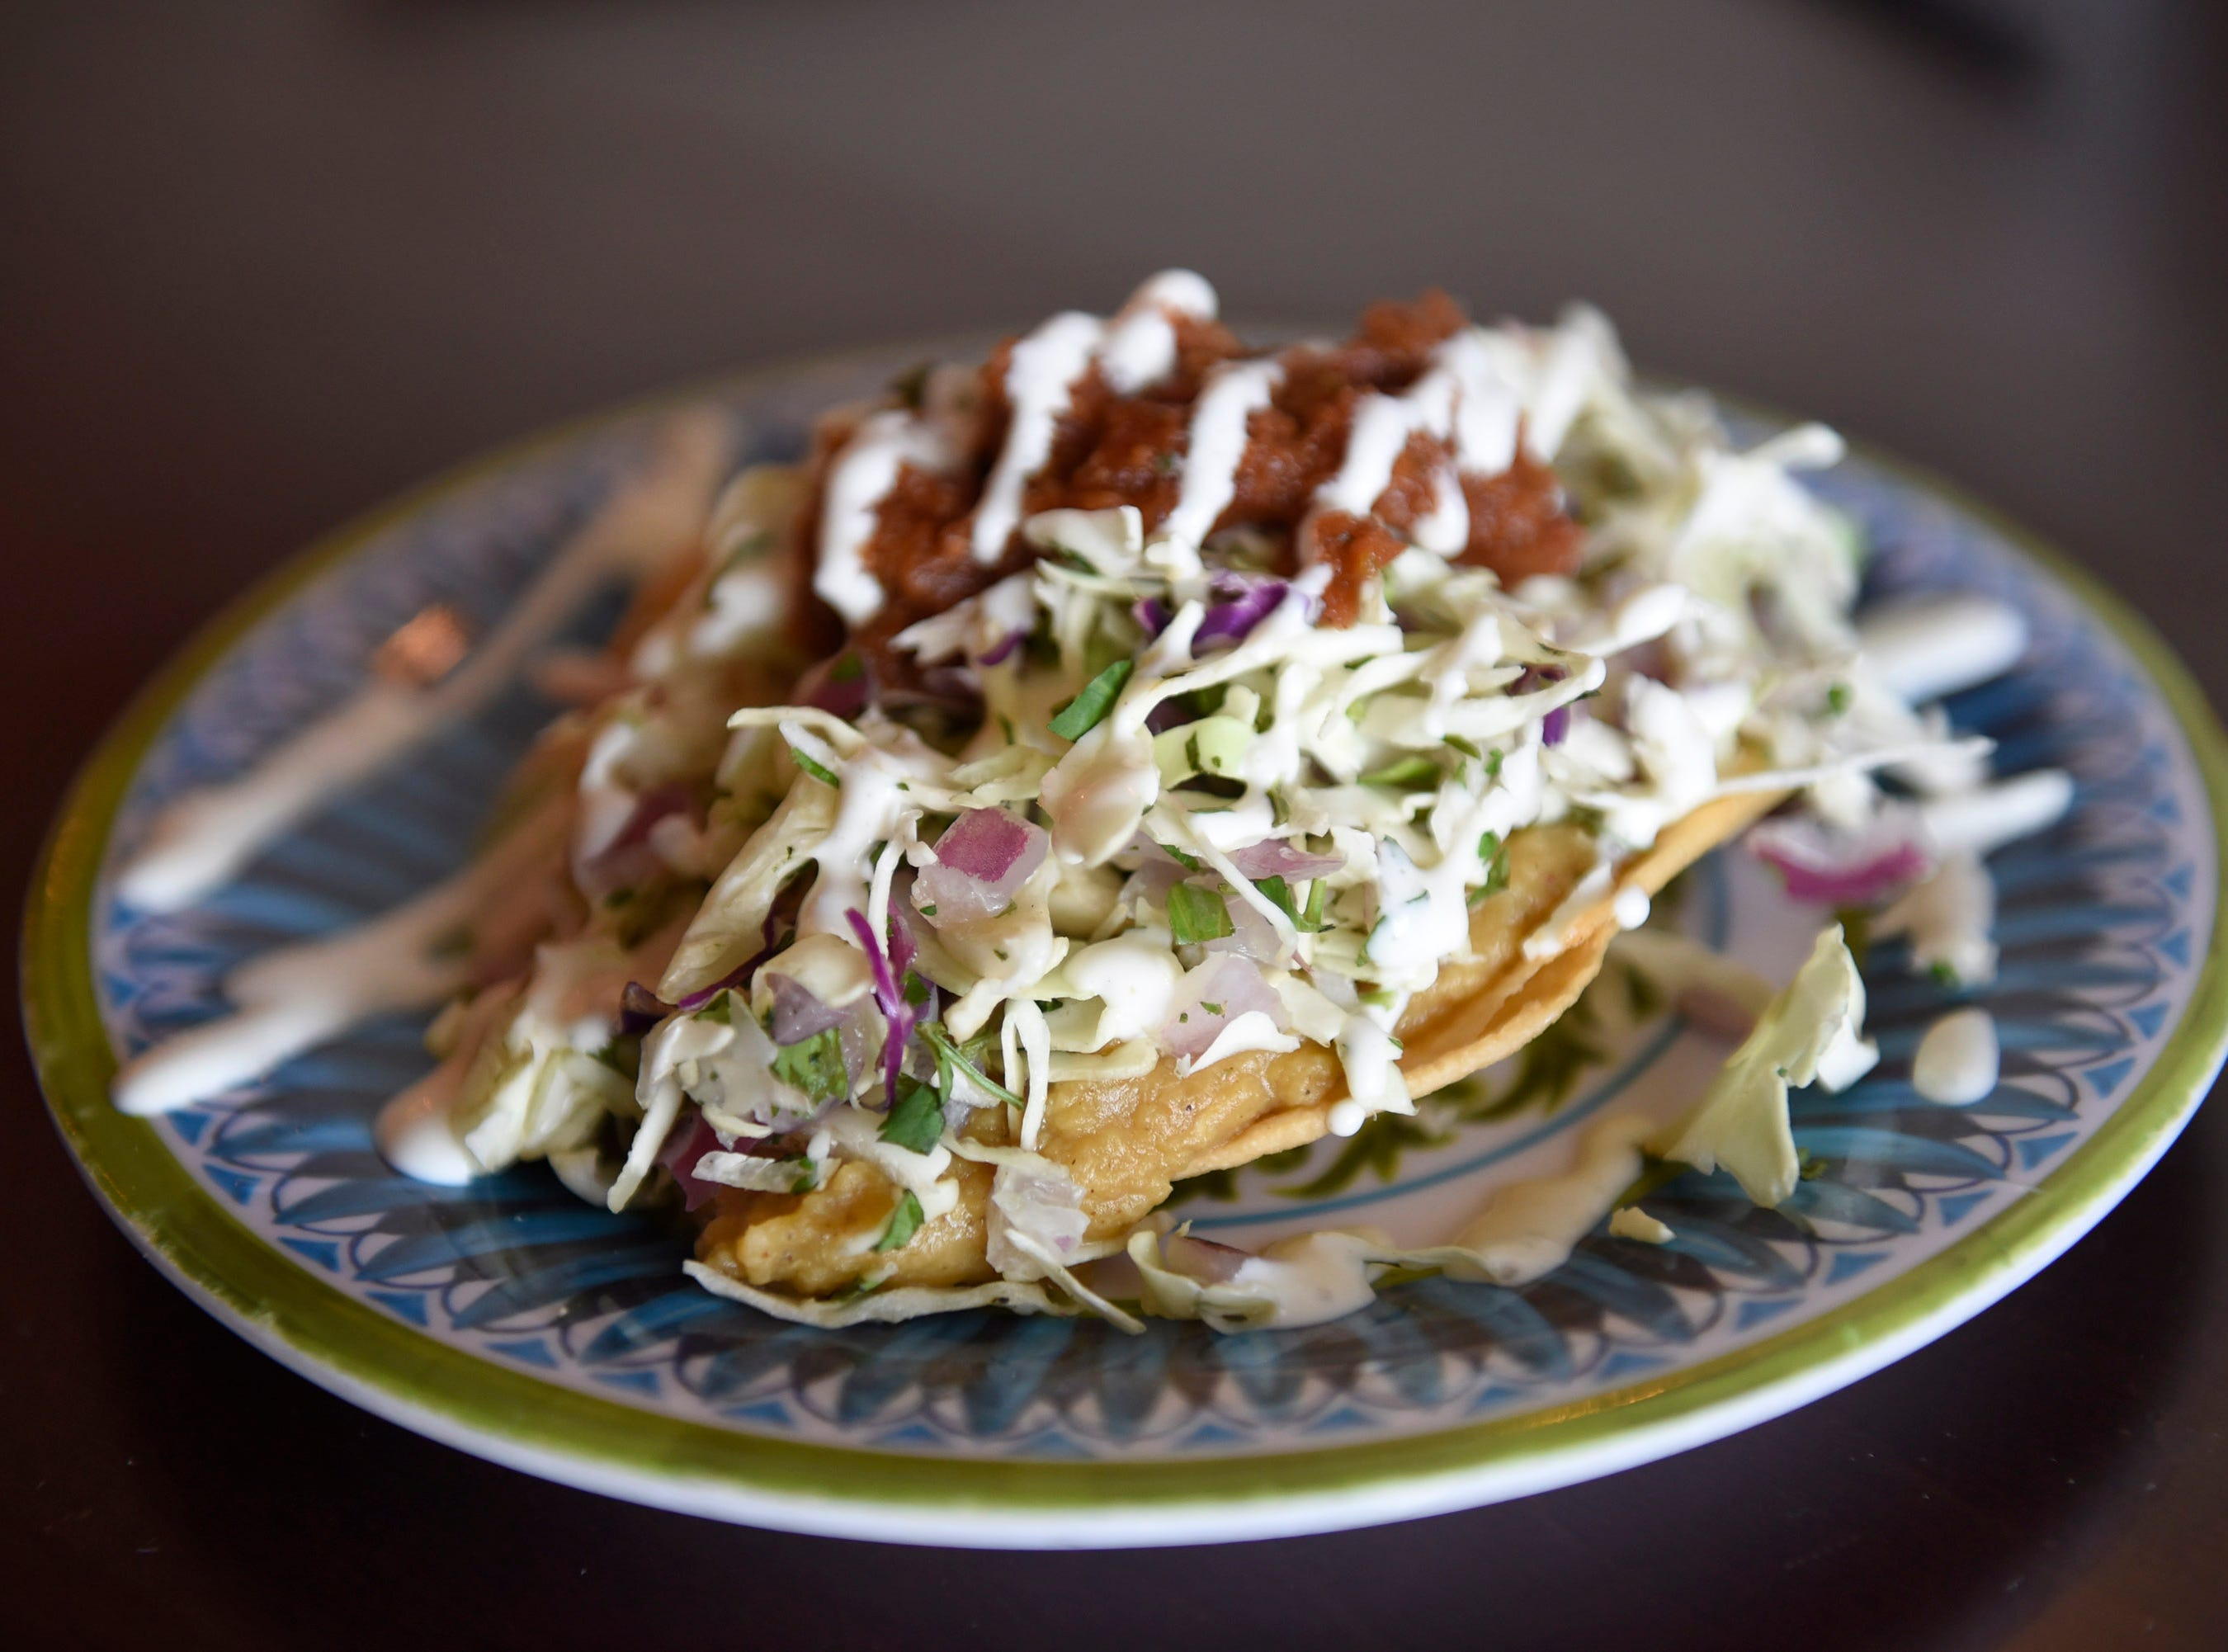 The Chive Tostada made with cumin, lentil chili, cilantro Lime Slaw, salsa, and sour cream.